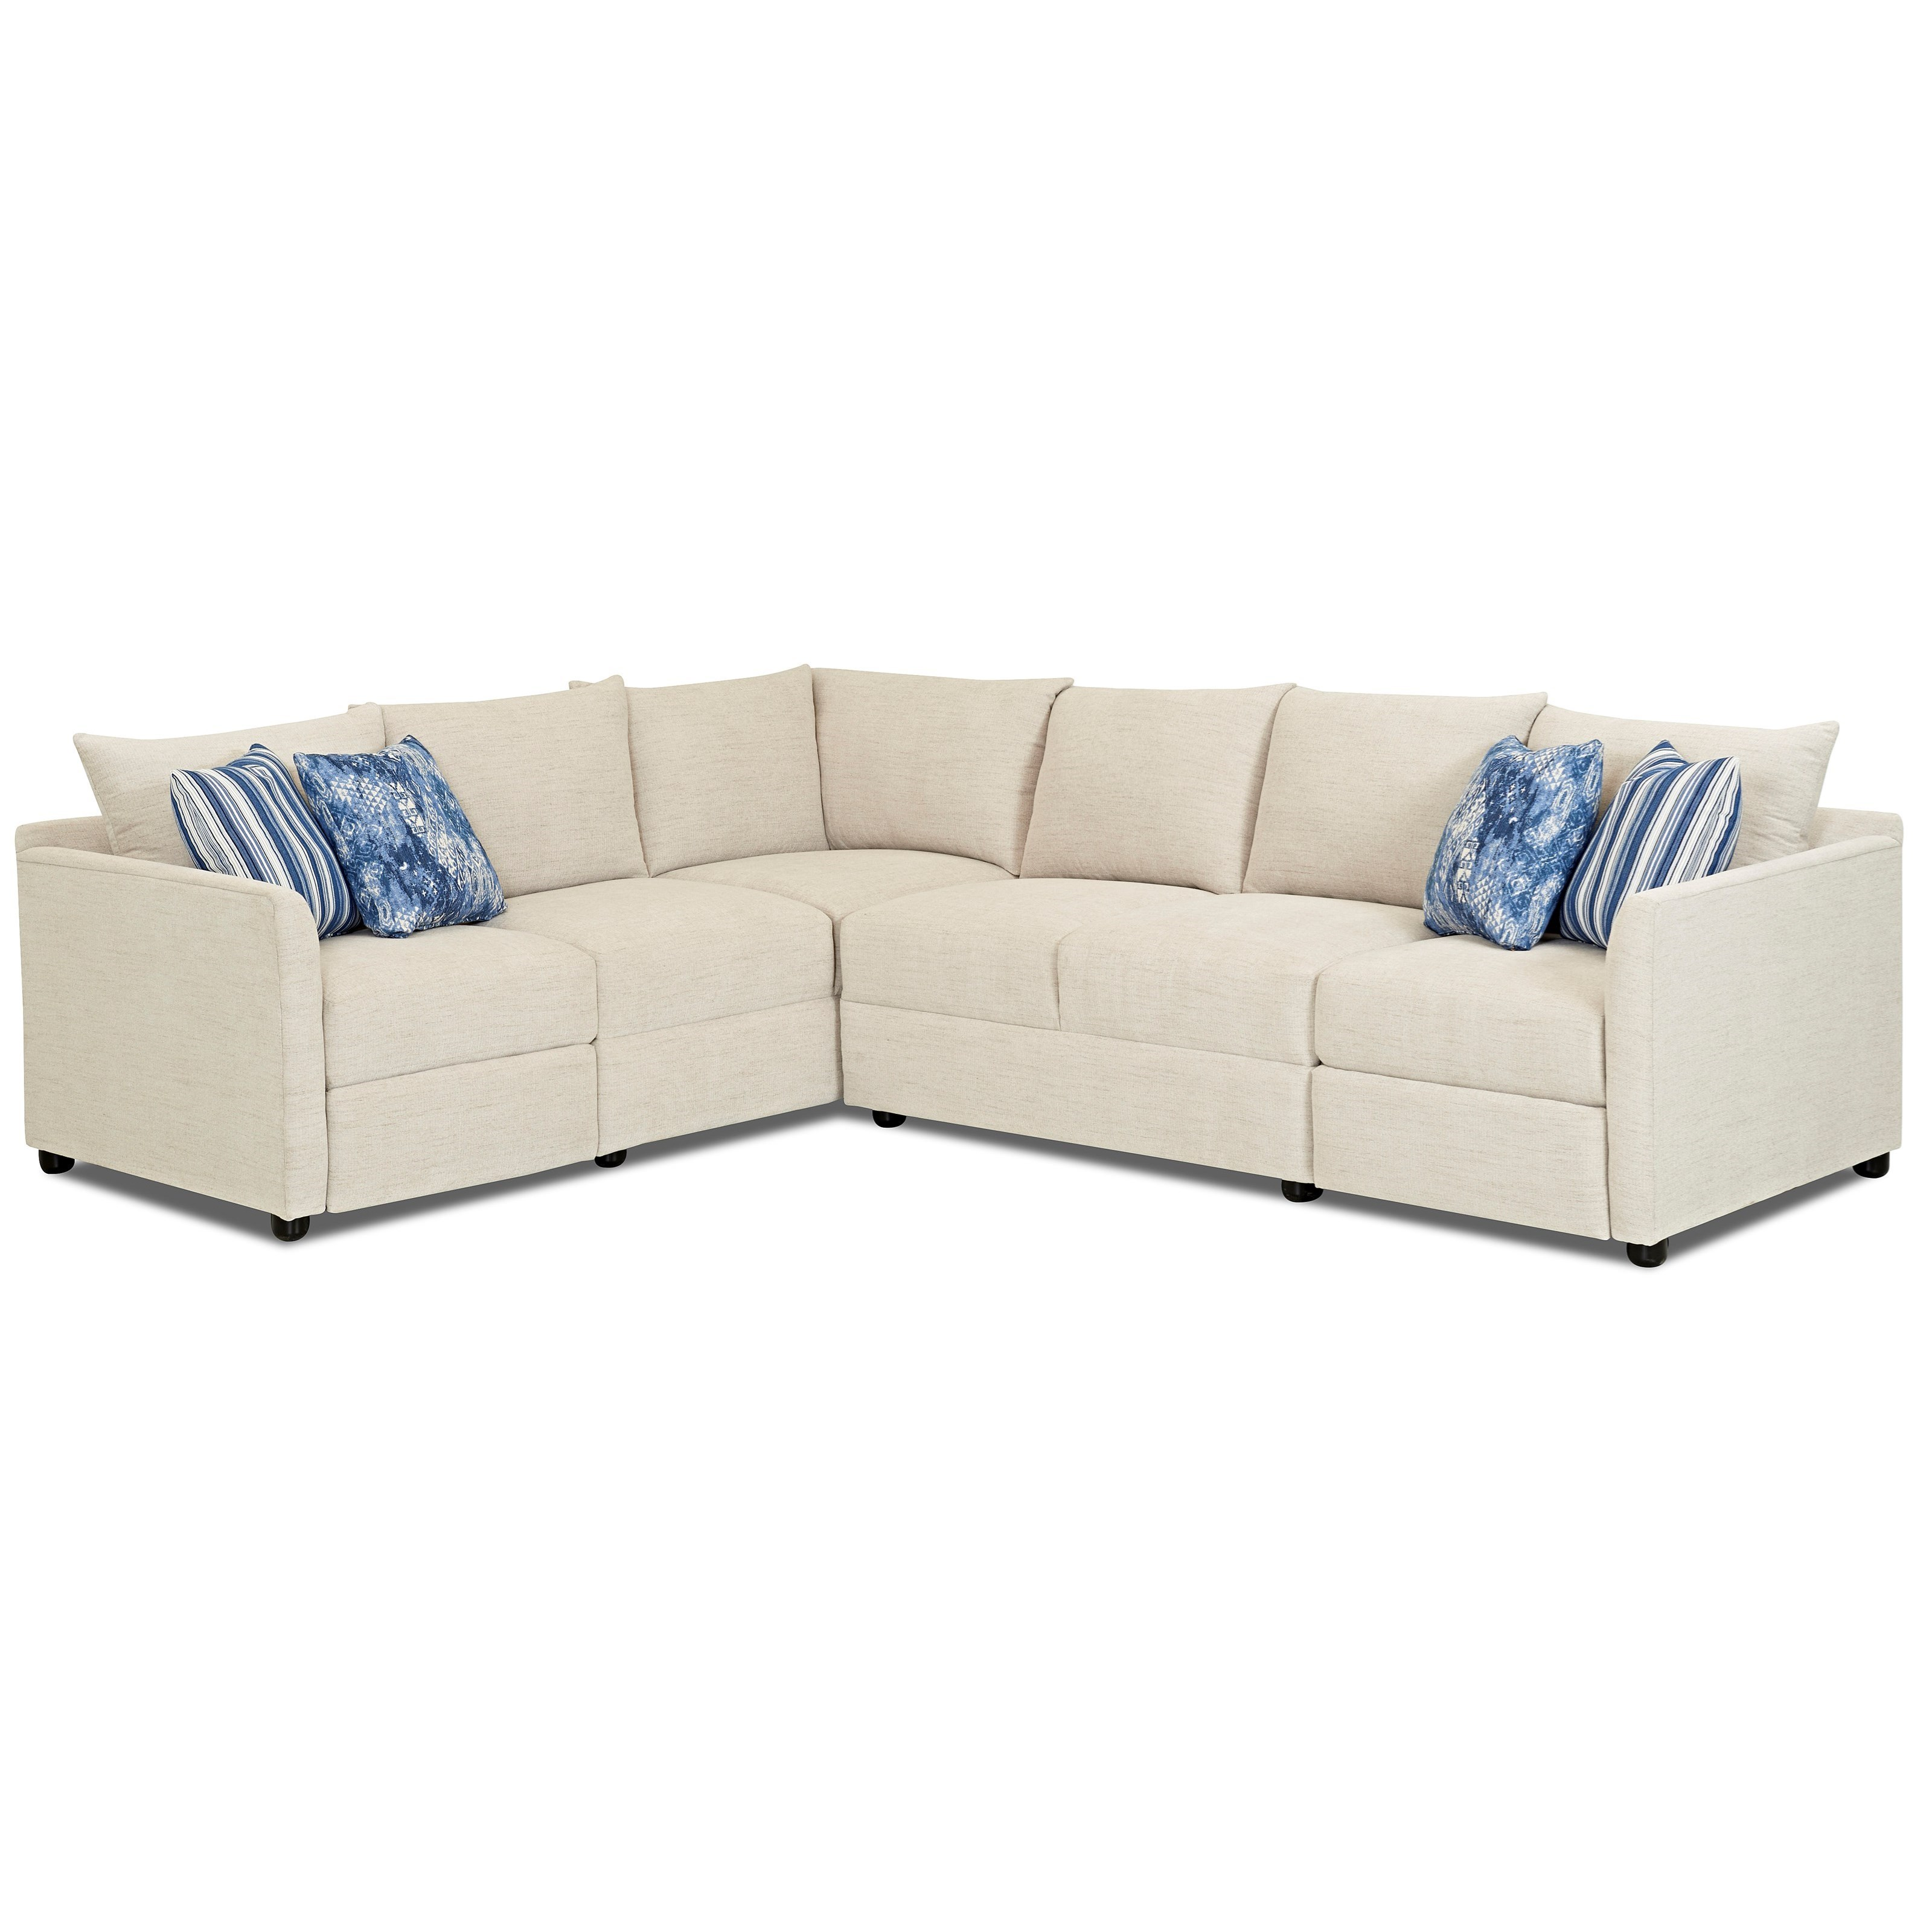 Atlanta 2 Pc Power Hybrid Reclining Sectional Sofa by Klaussner at Catalog Outlet